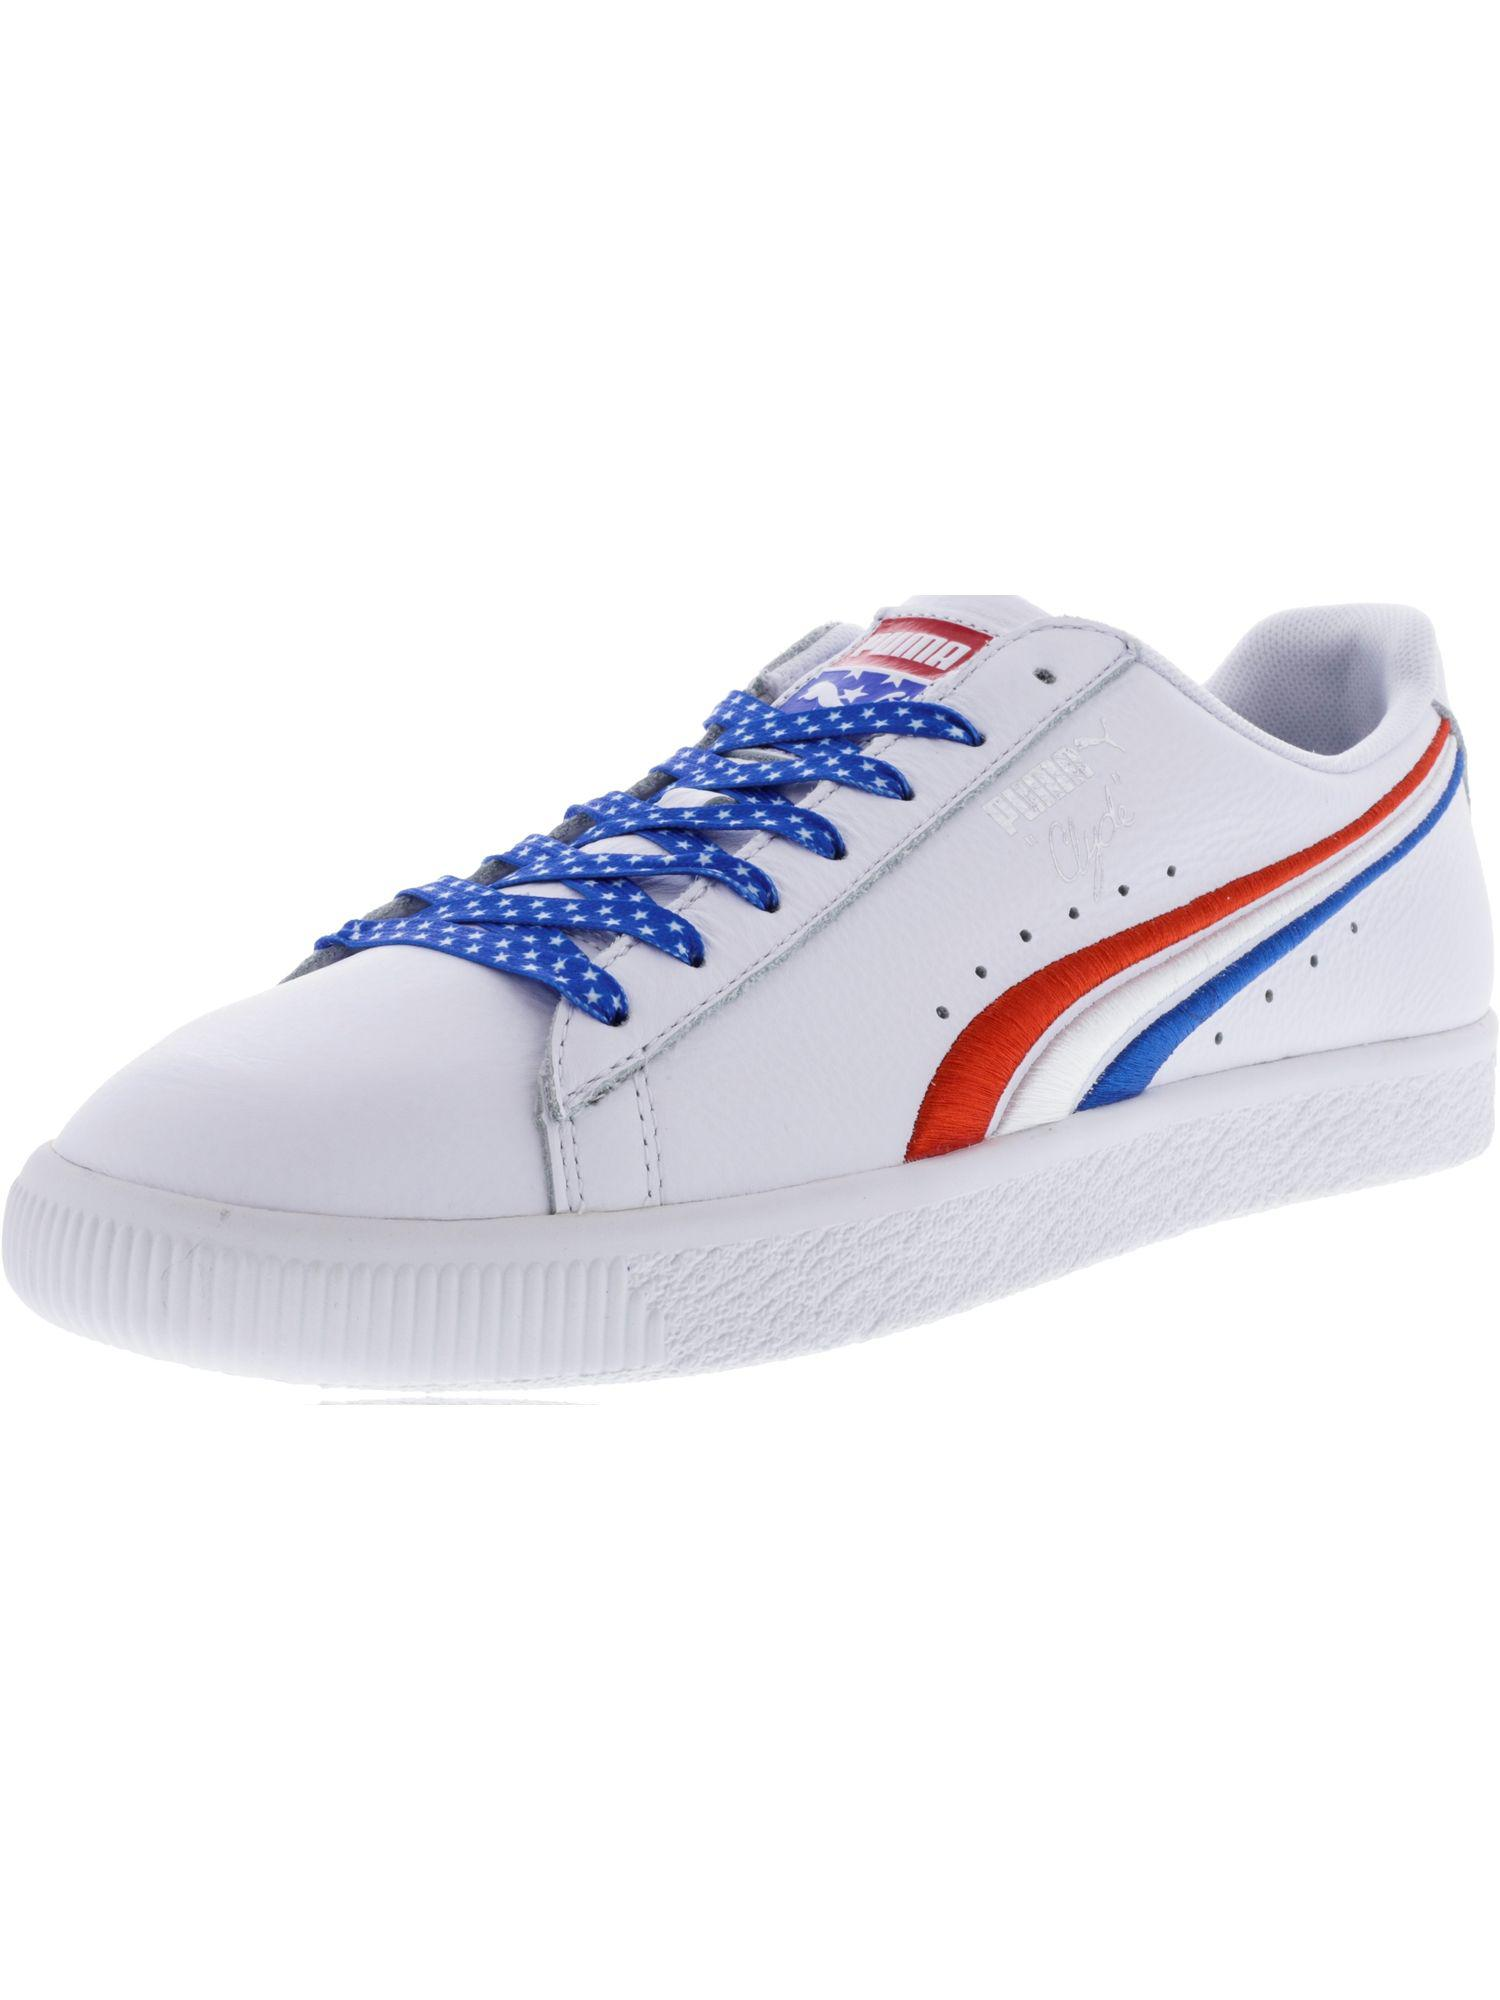 hot sale online 5b9a6 ff73f PUMA. White Men s Clyde 4th Of July Ankle-high Leather Fashion Sneaker